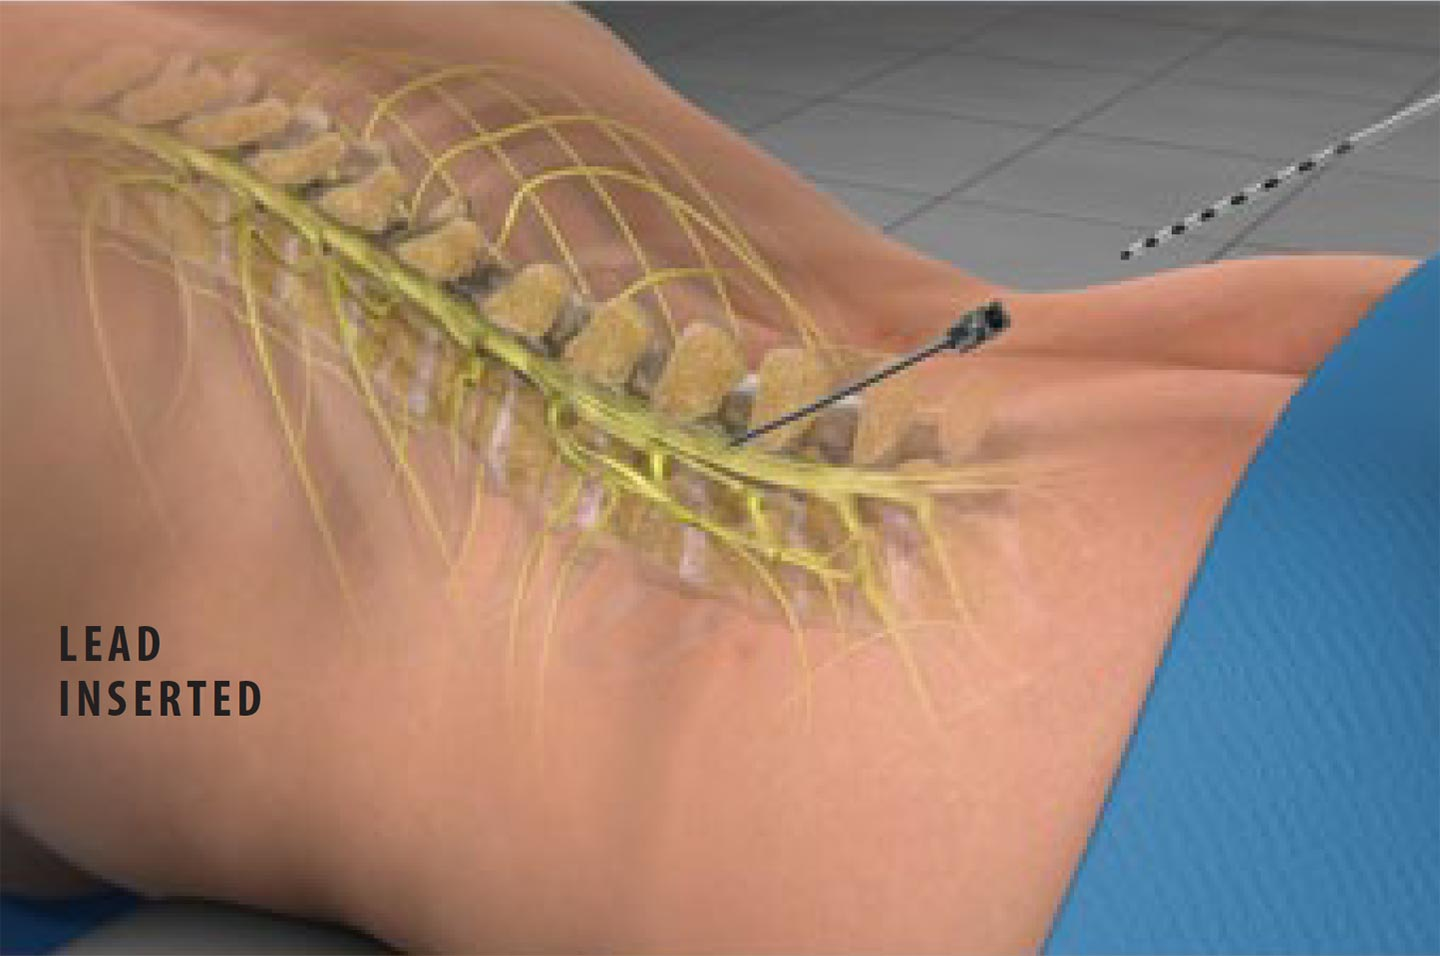 Spinal Cord Stimulation Lead Inserted